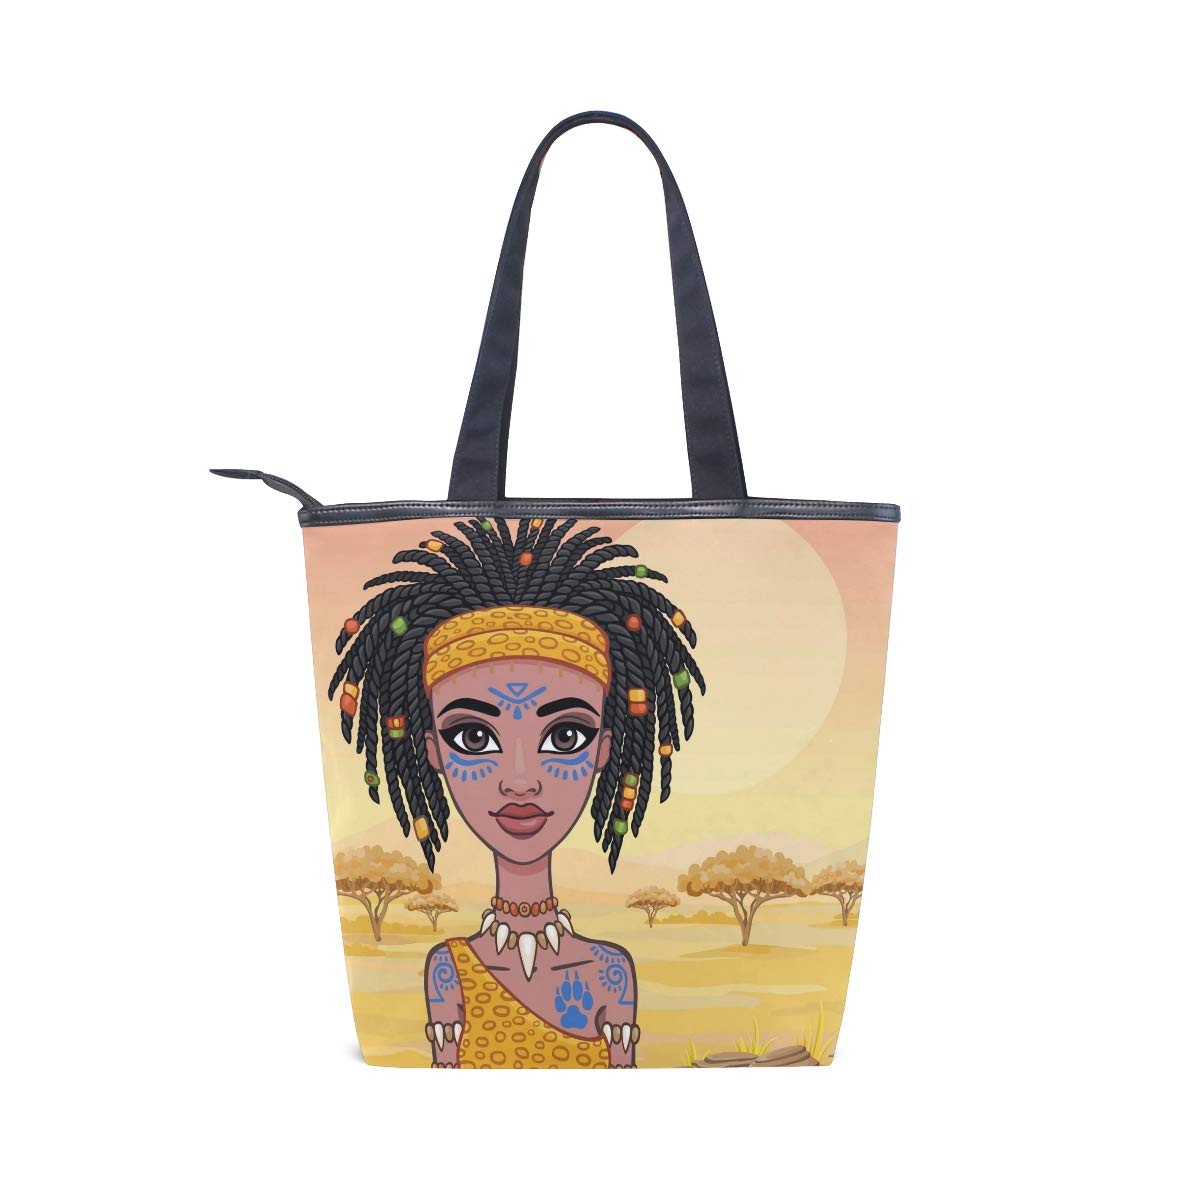 7082e0dc1f49 IMOBABY African Art Women Canvas Shopping Tote Bag Large Size ...